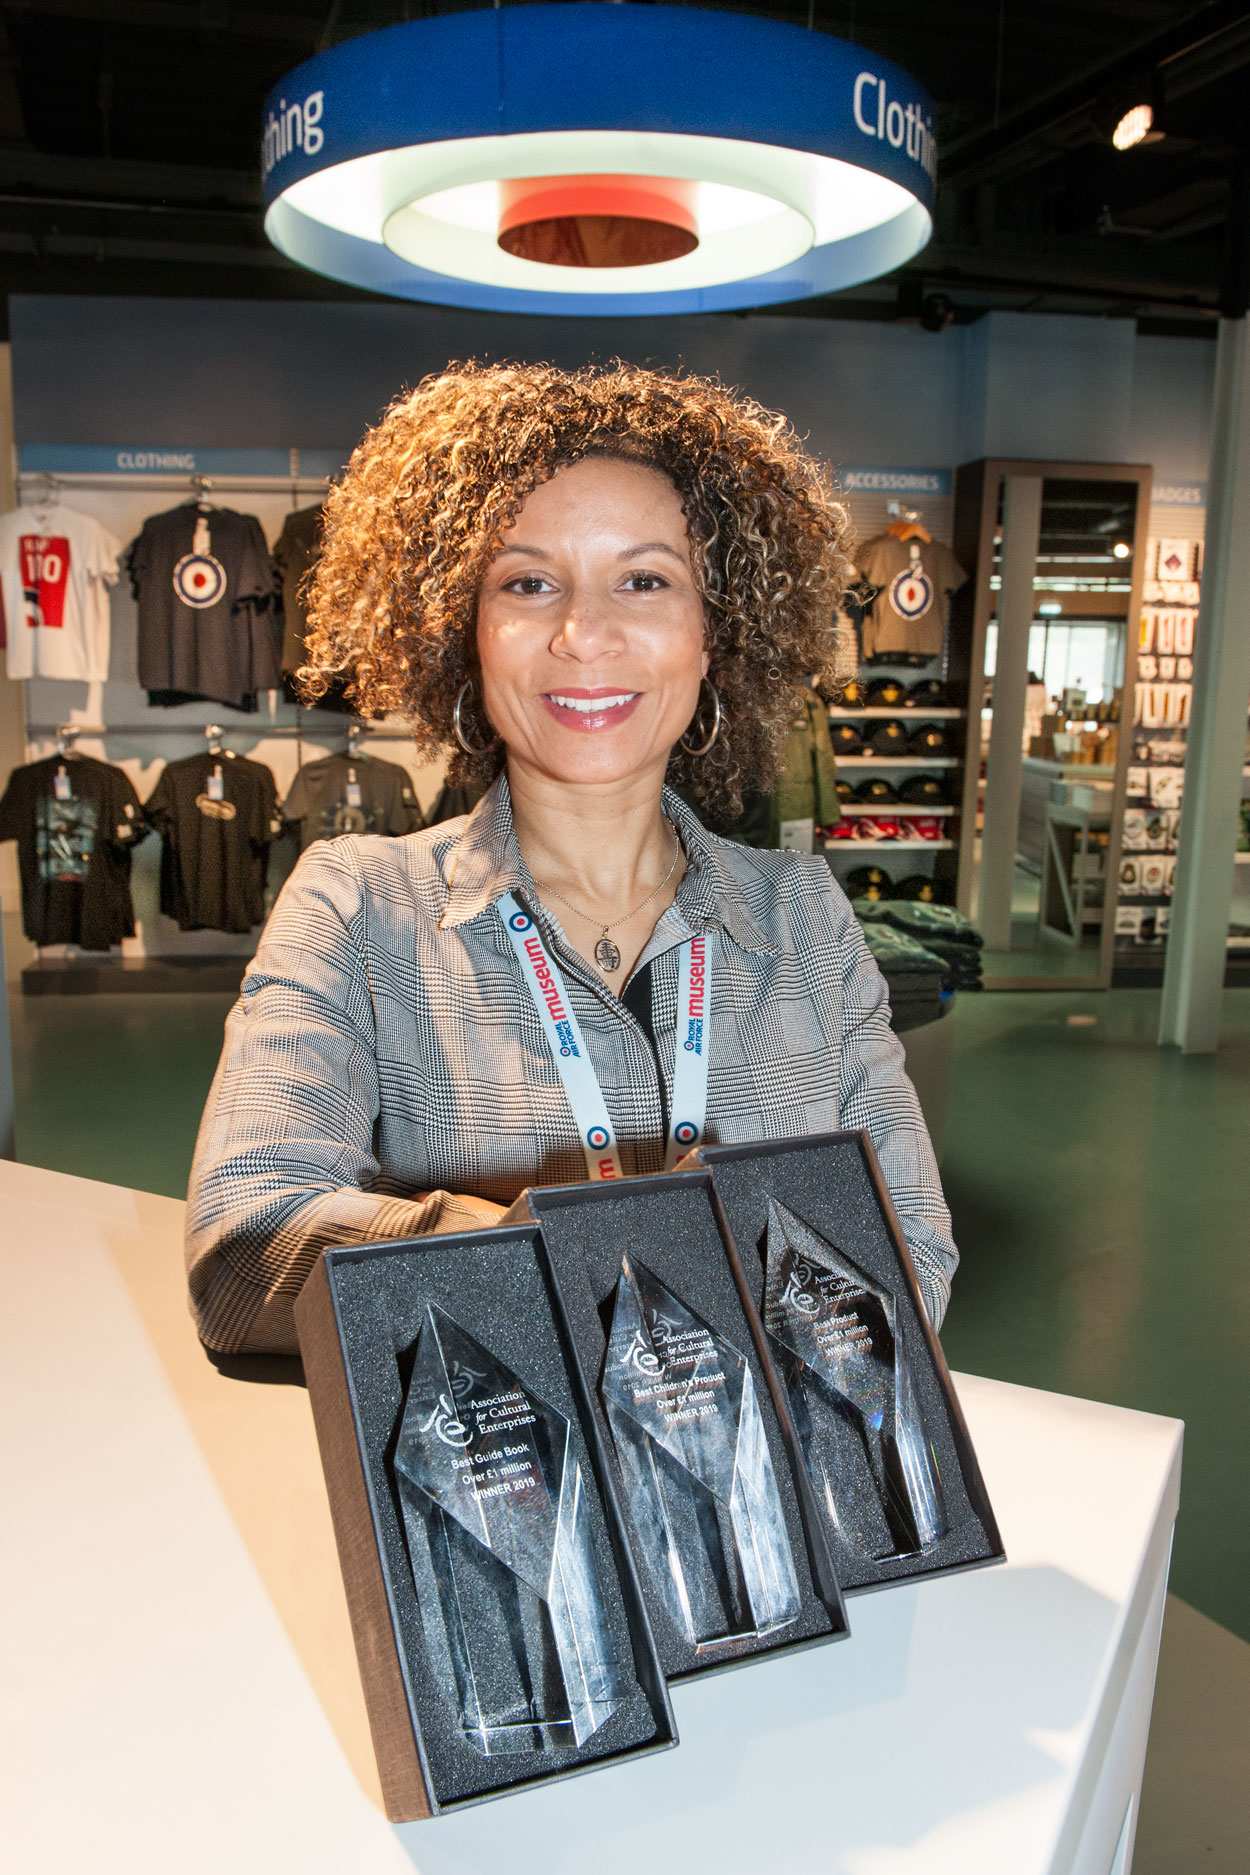 Head of Retail, Frances Galvan with our Awards